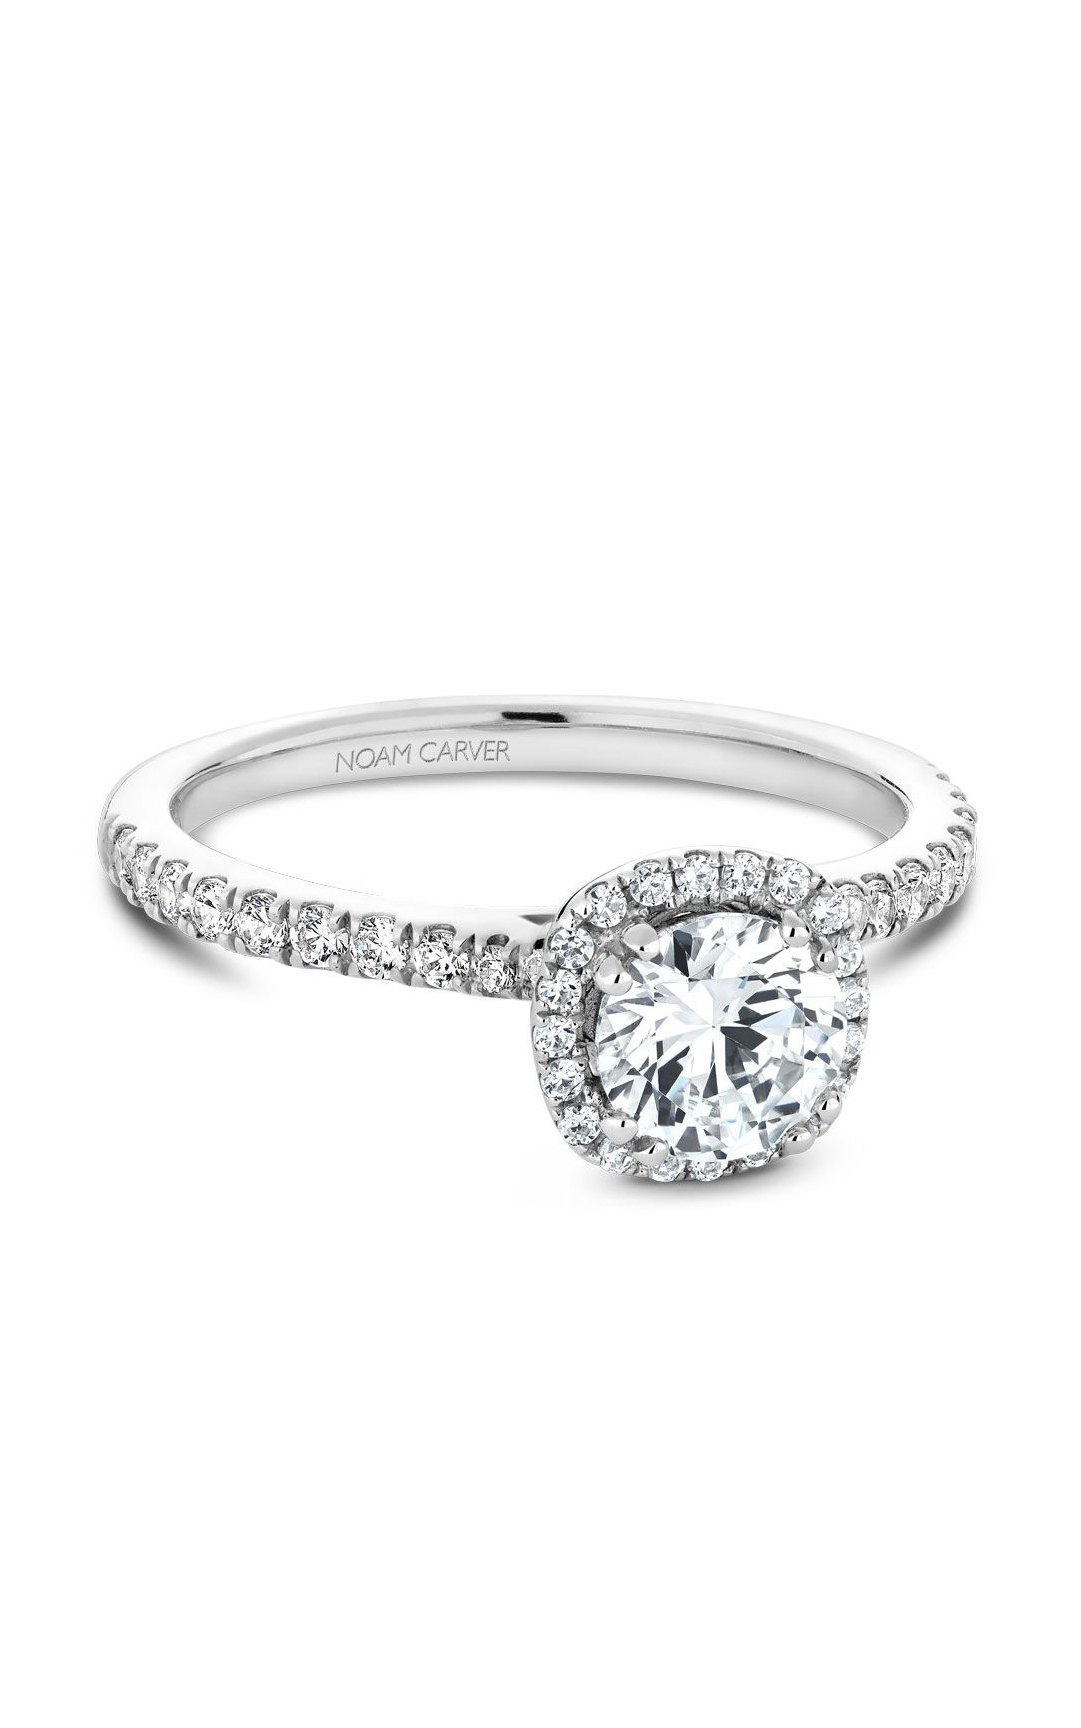 Noam Carver Halo Engagement Ring B142-06WM product image